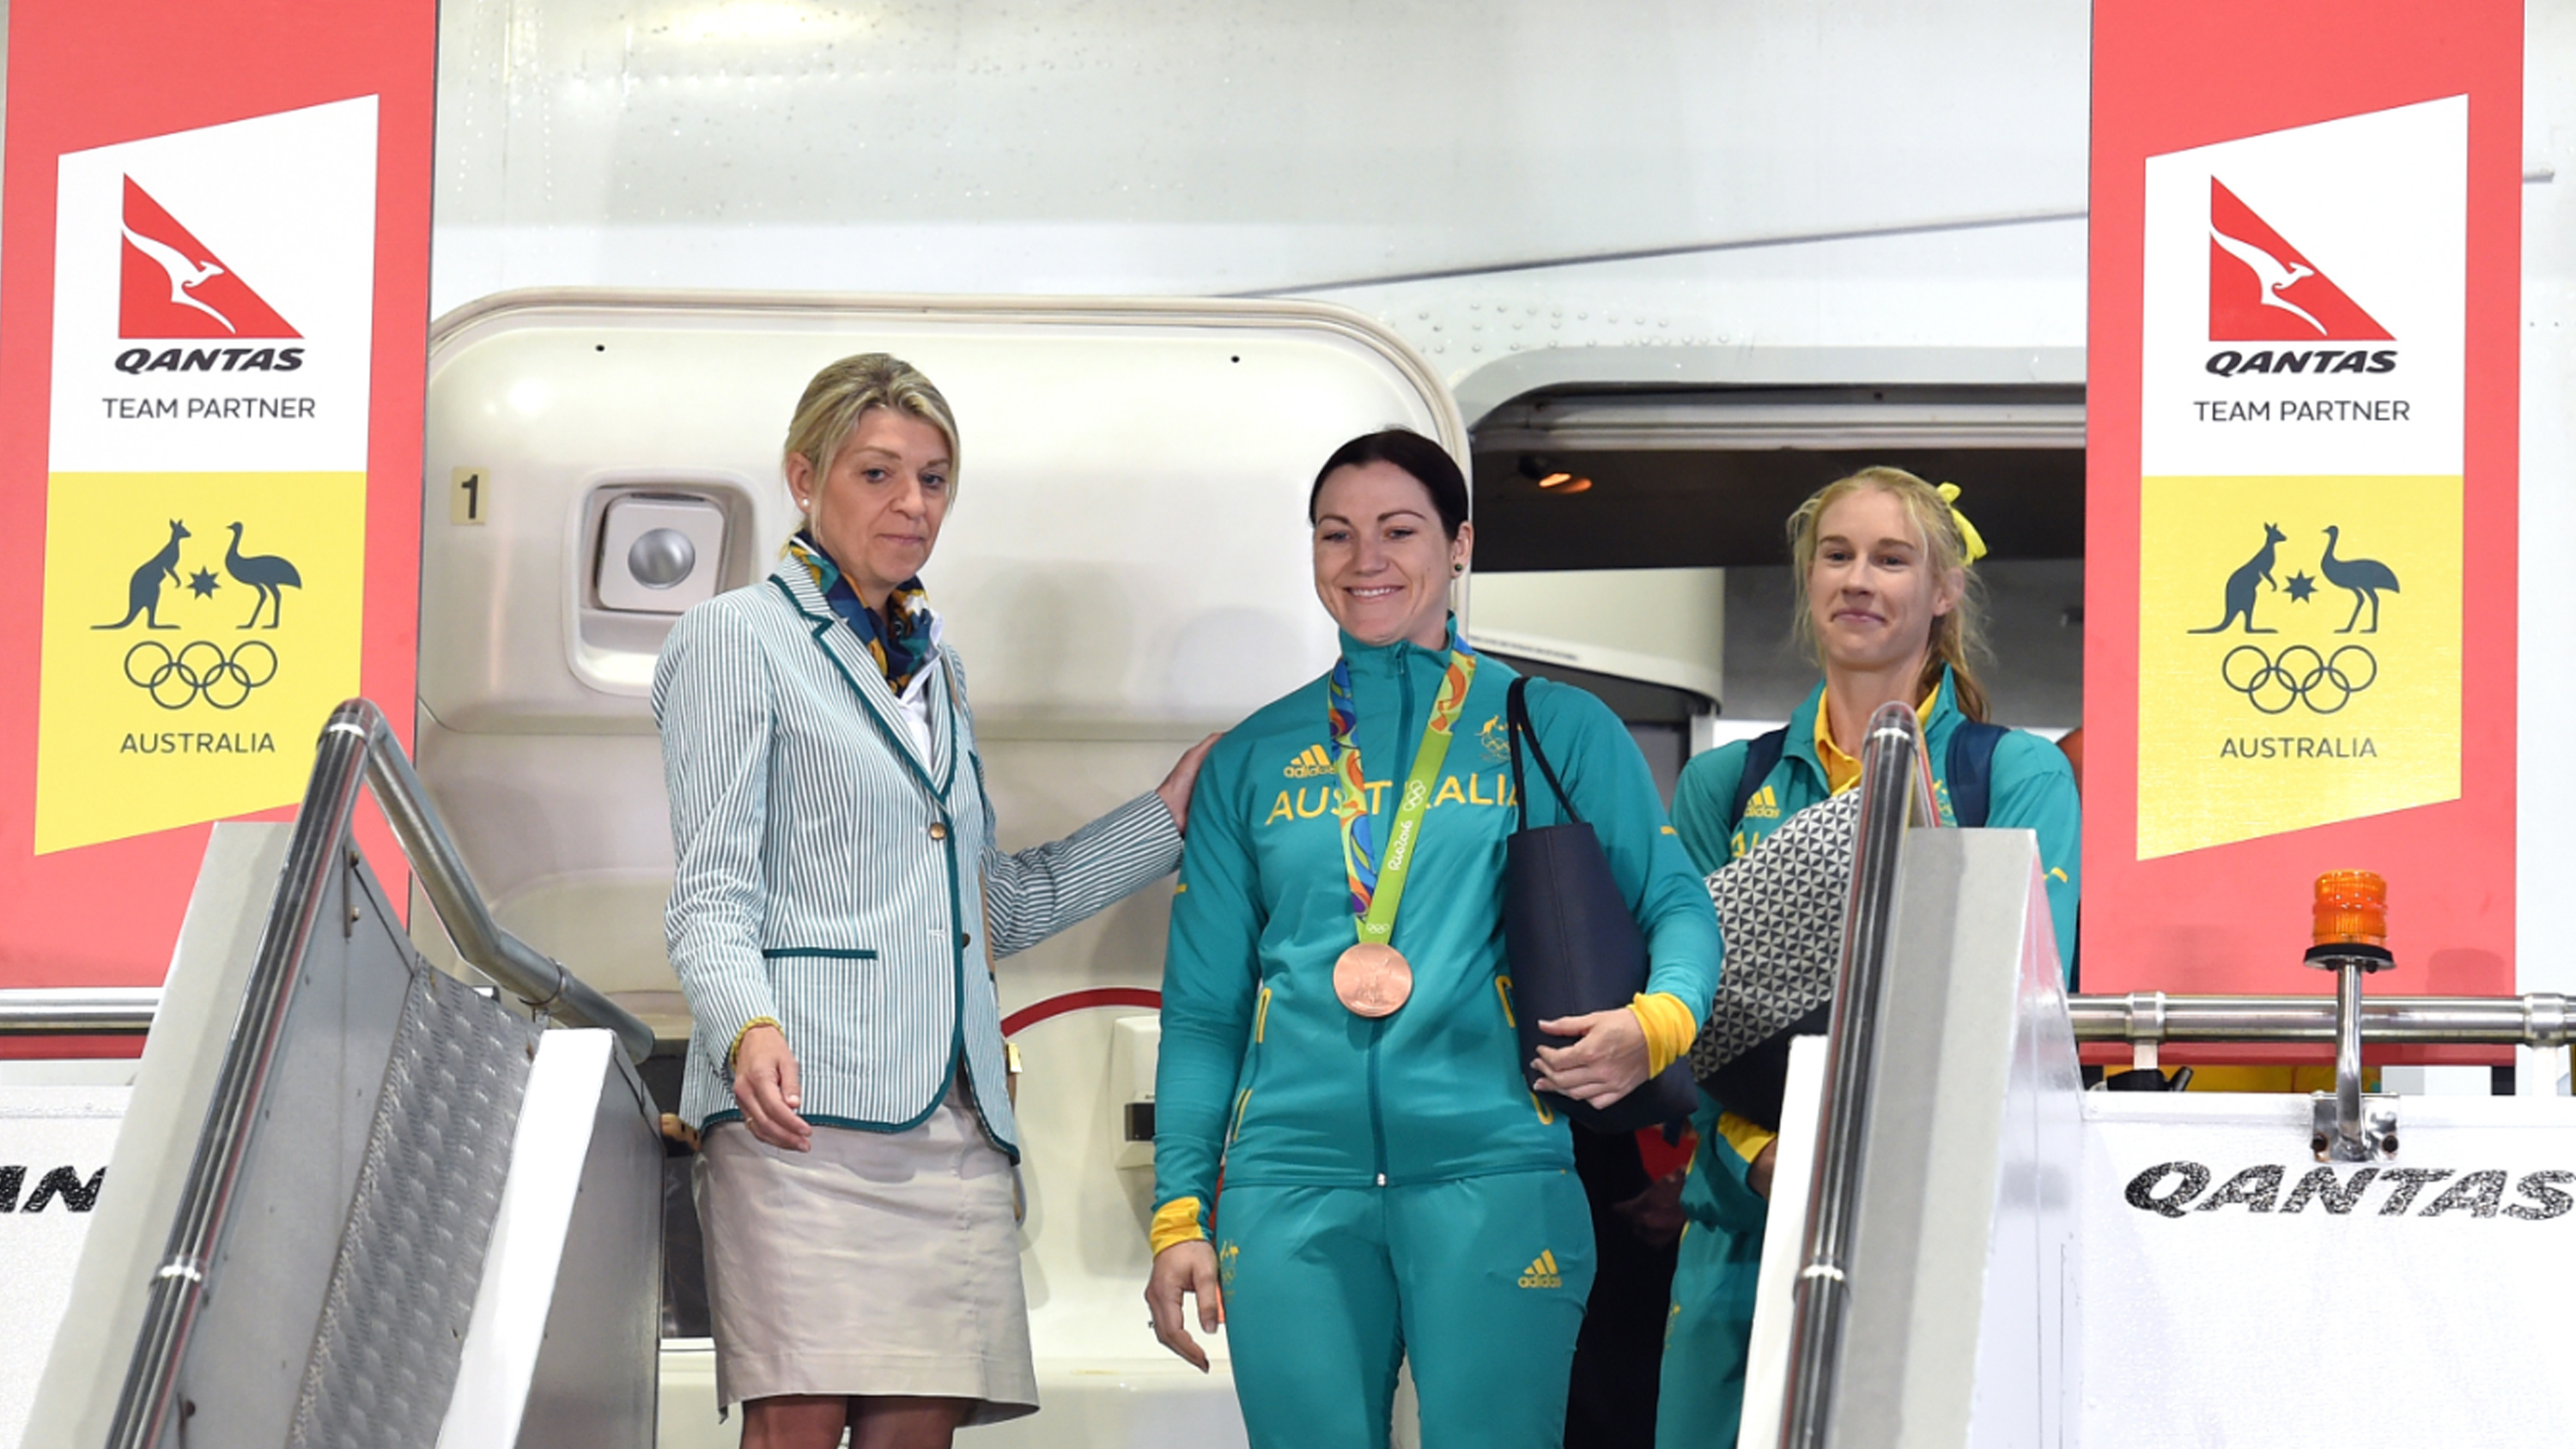 <strong>Australia's Olympic athletes arrived home from Rio this morning, touching down to a cheering crowd at Sydney Airport. </strong>